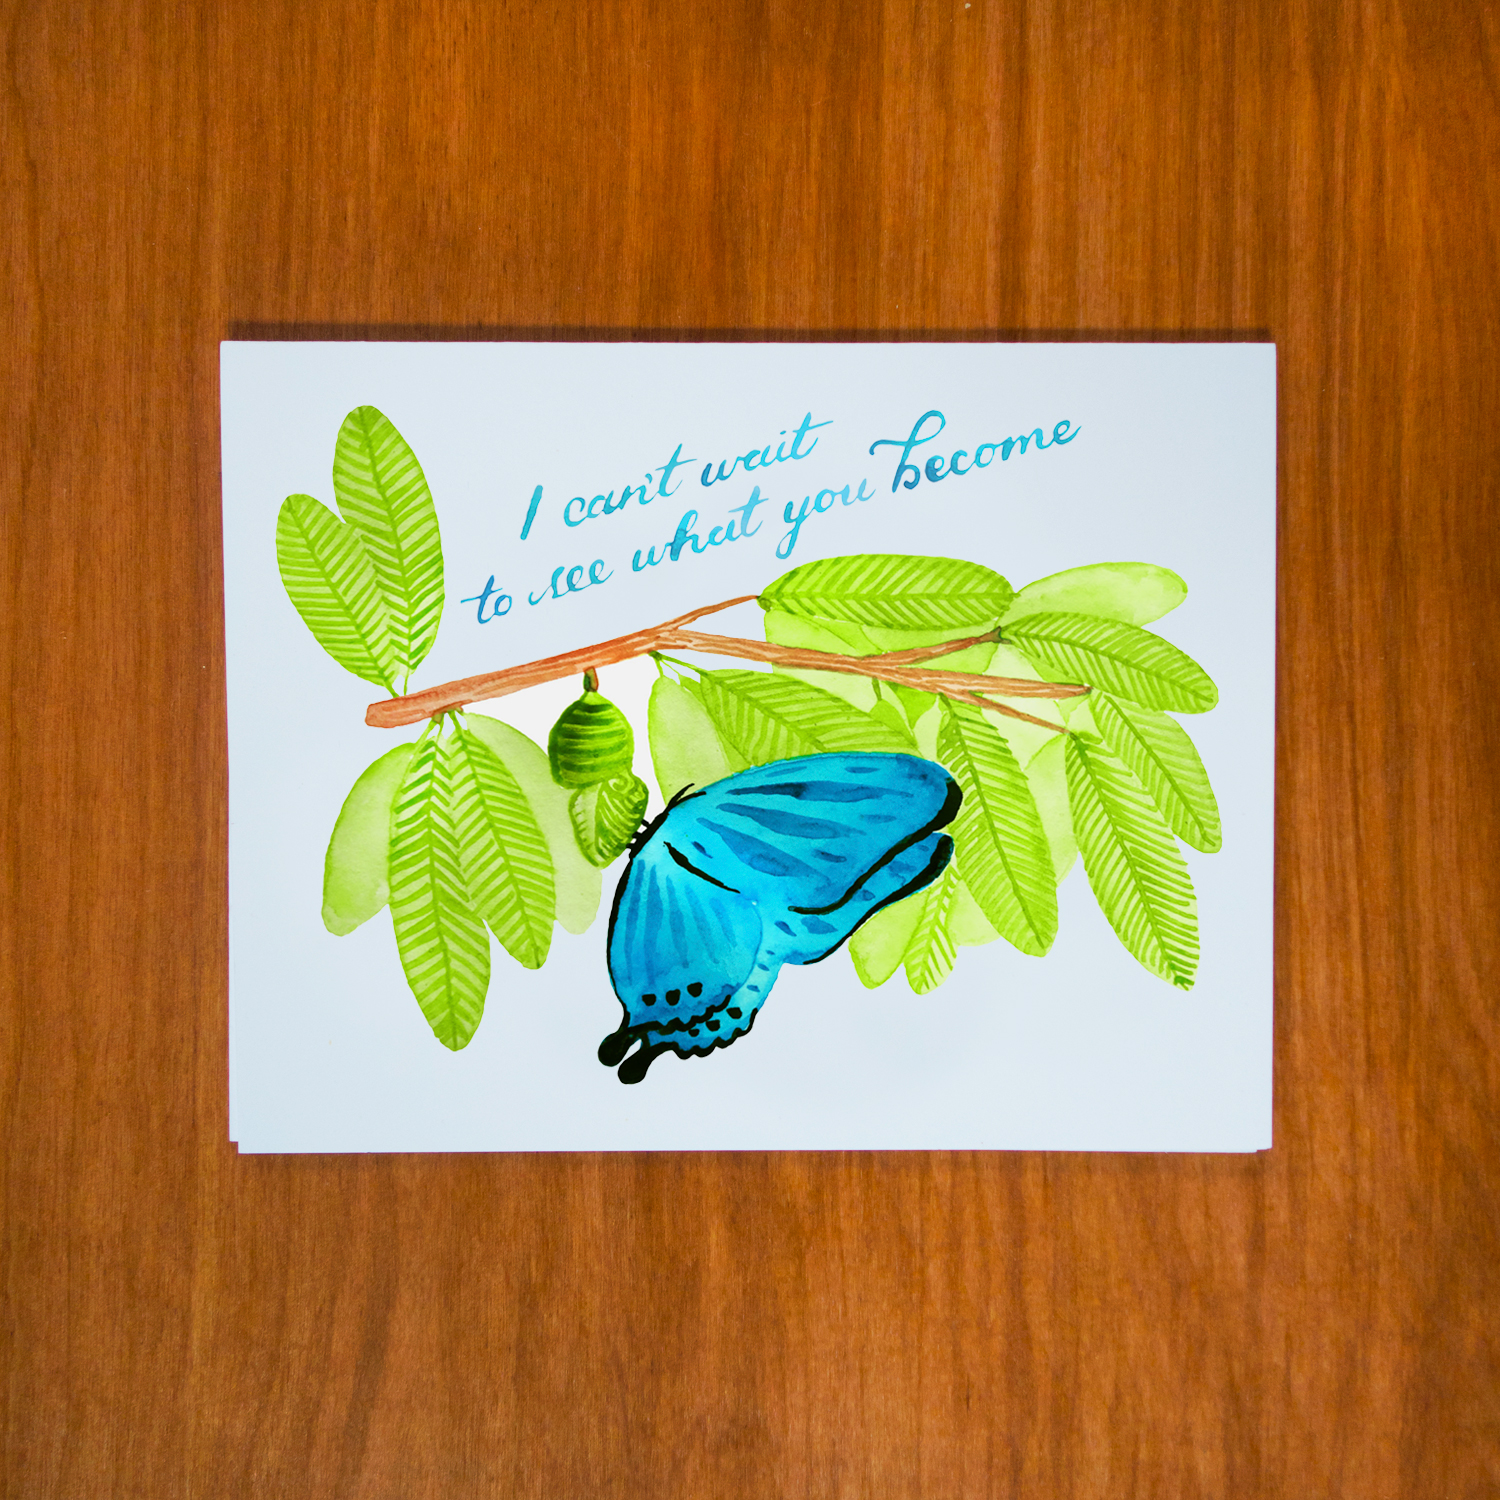 butterfly-greeting-card-on-wood-brighter.jpg